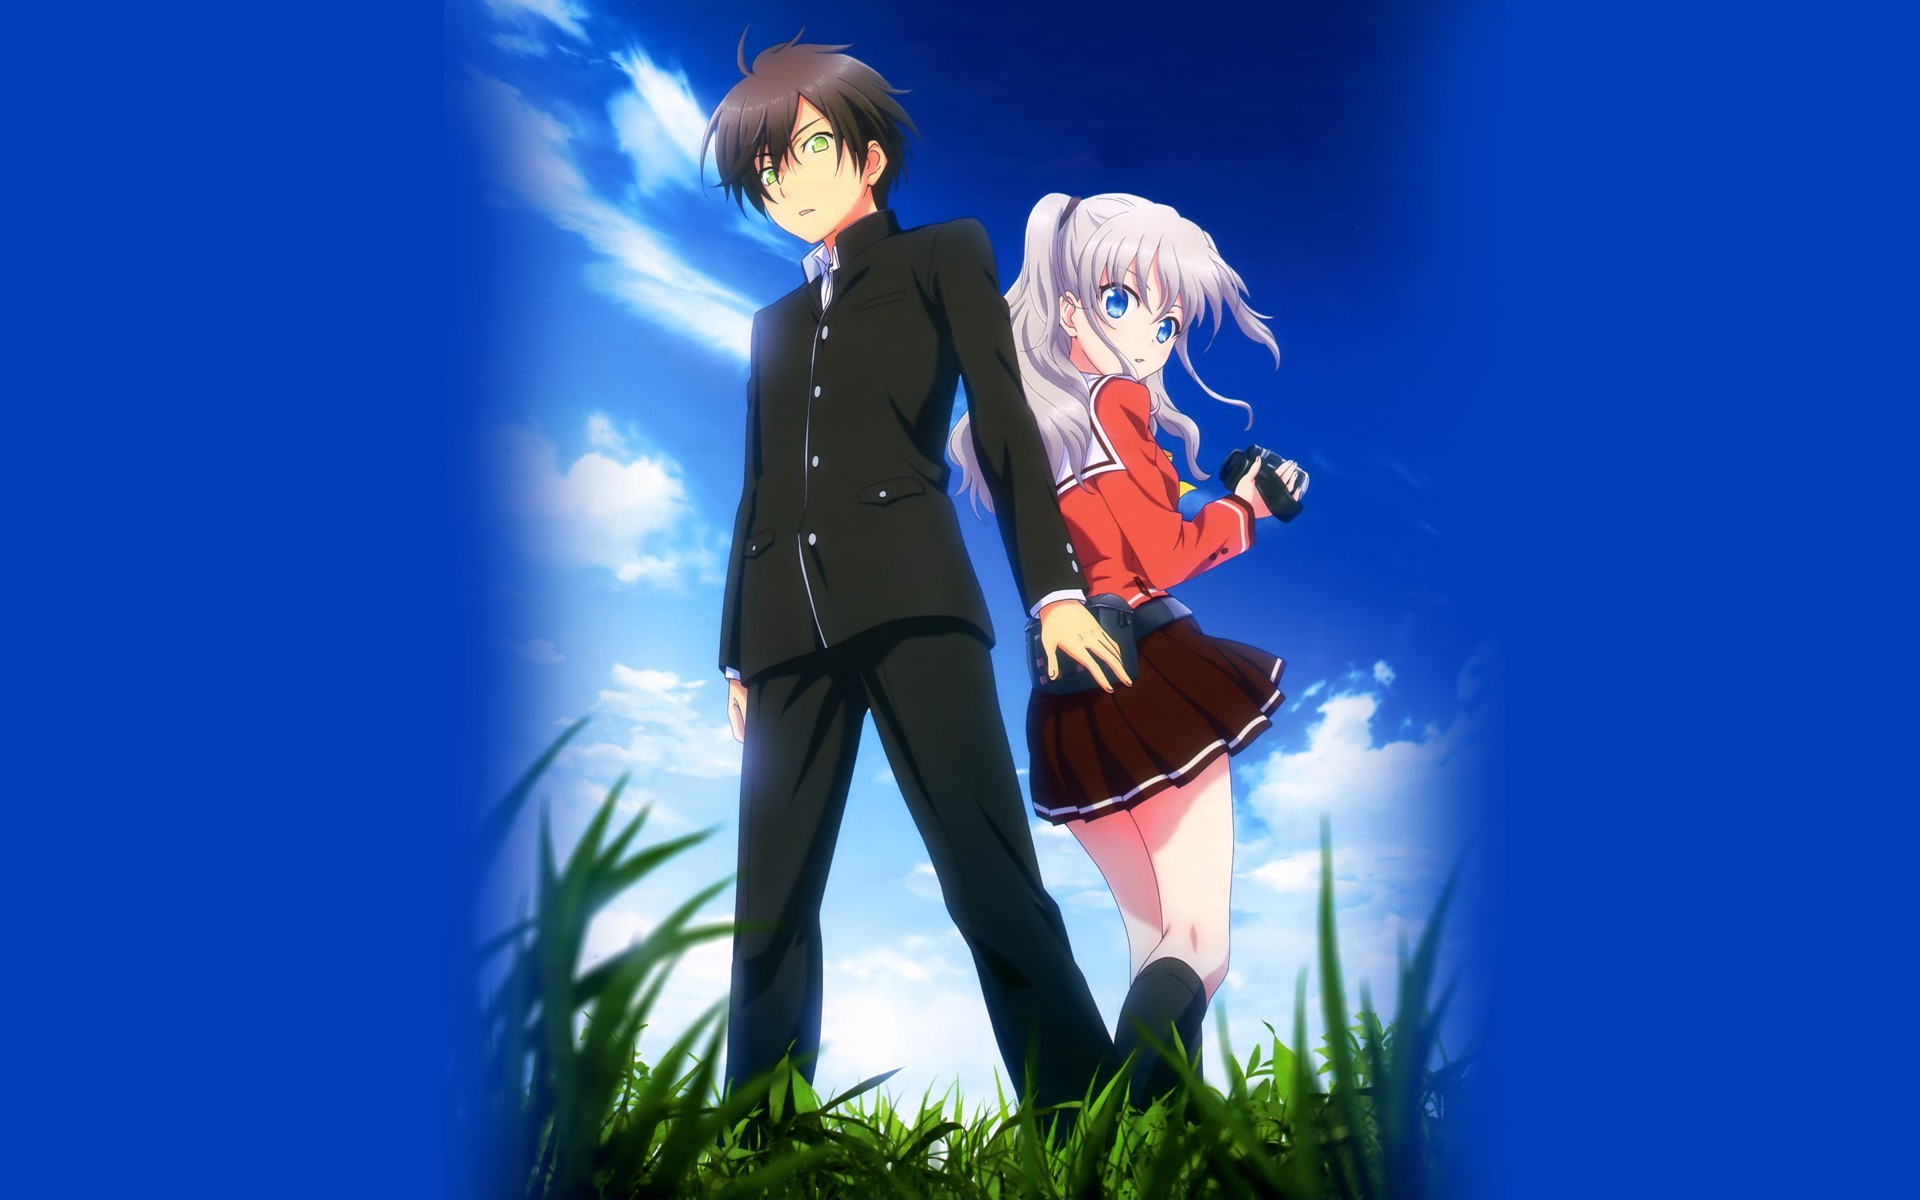 Wallpaper Anime Couple (76+ pictures)